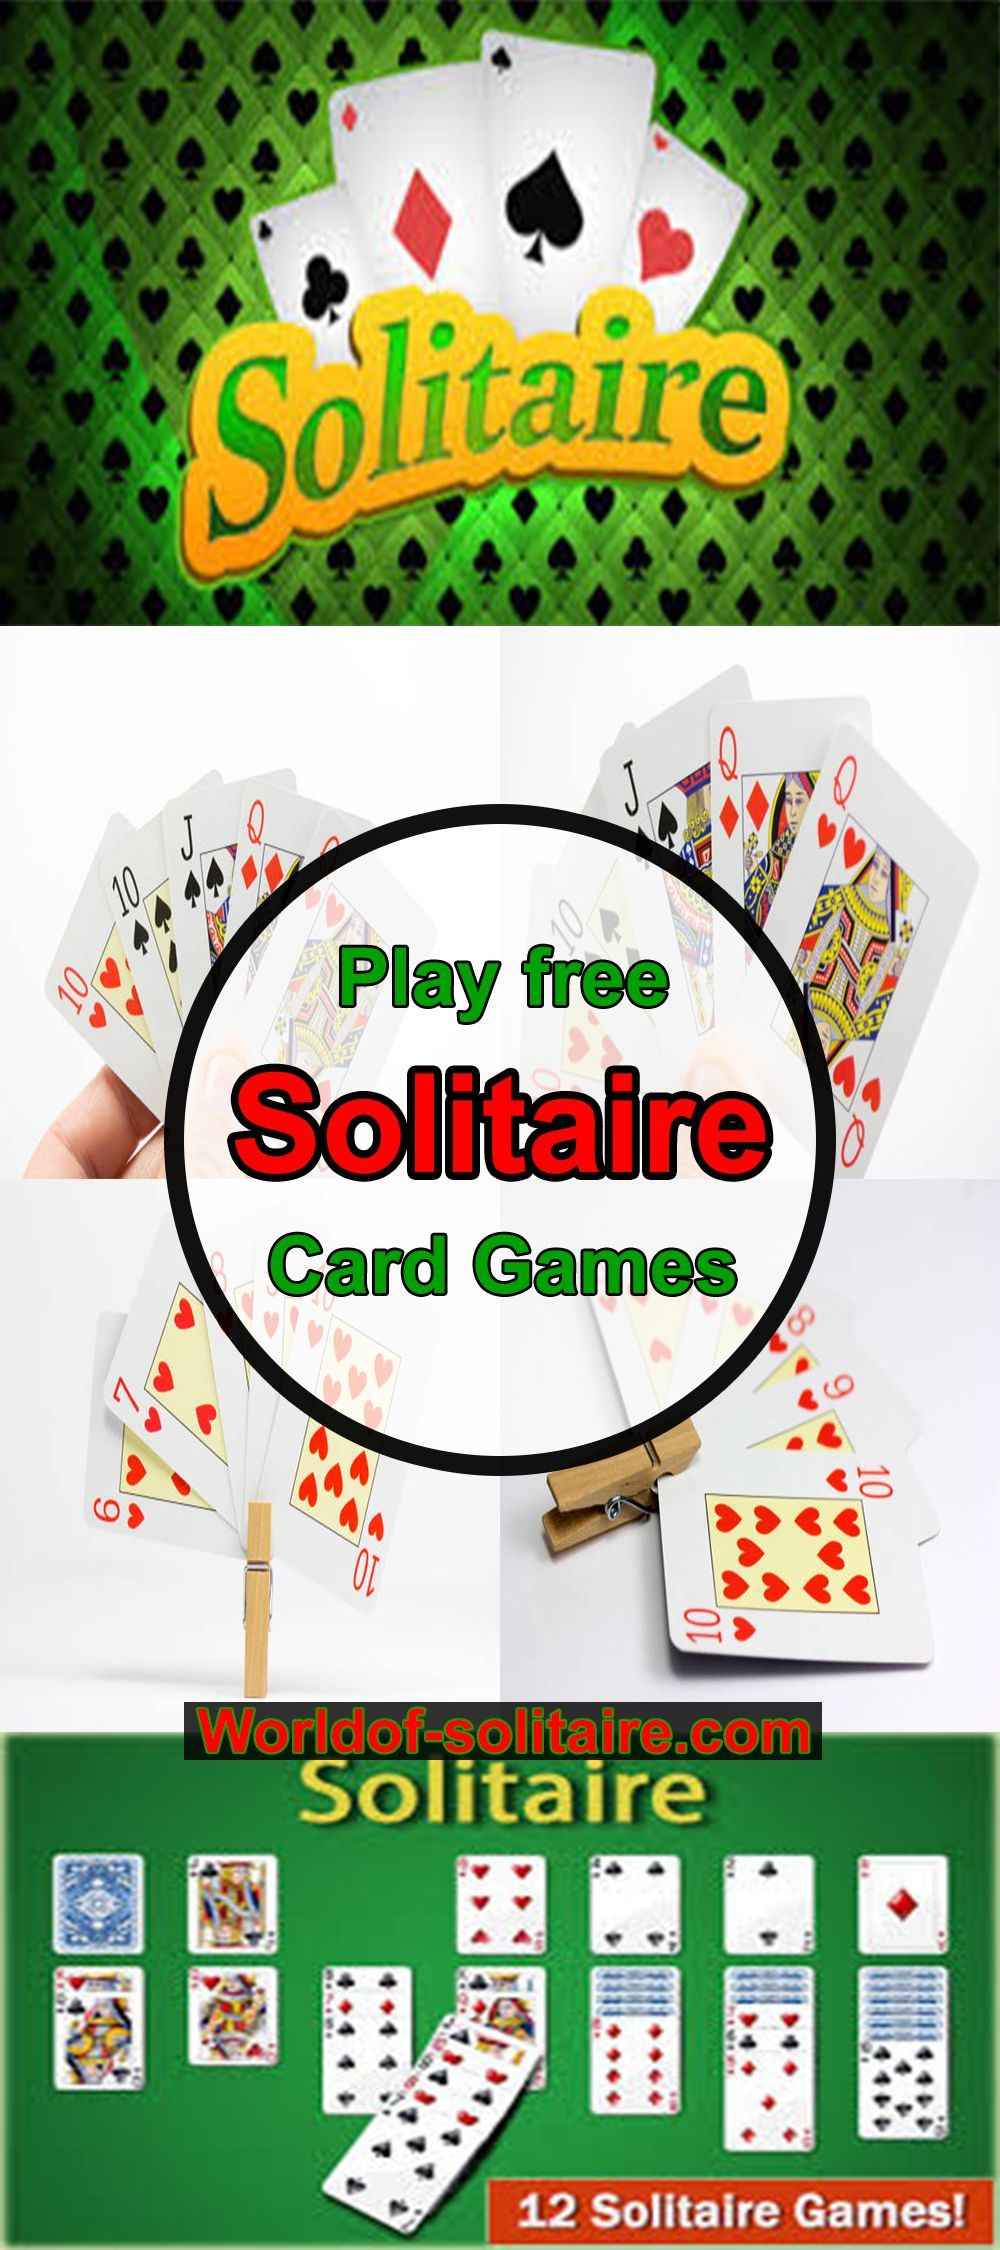 world of solitaire spider solitaire and klondike